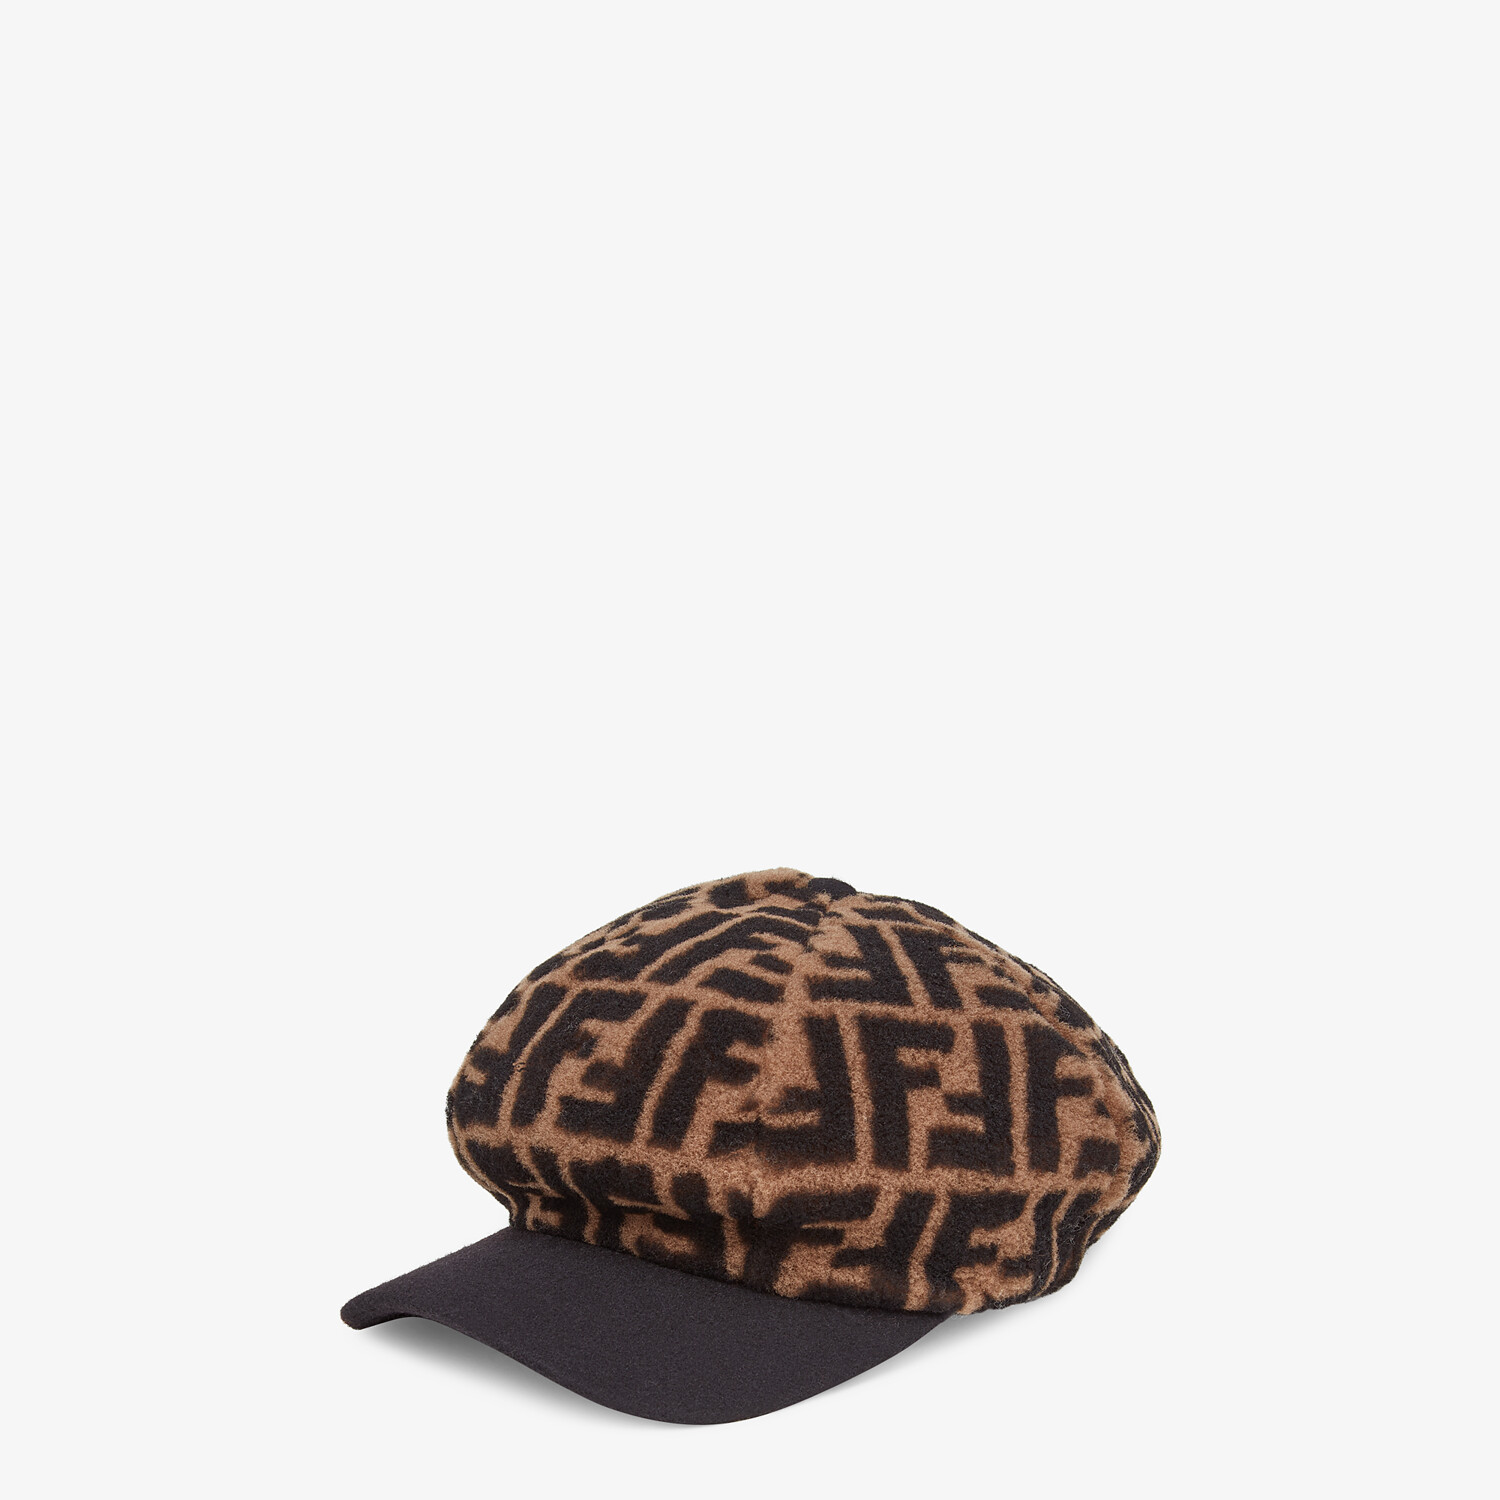 FENDI HAT - Baseball cap in brown shearling - view 1 detail